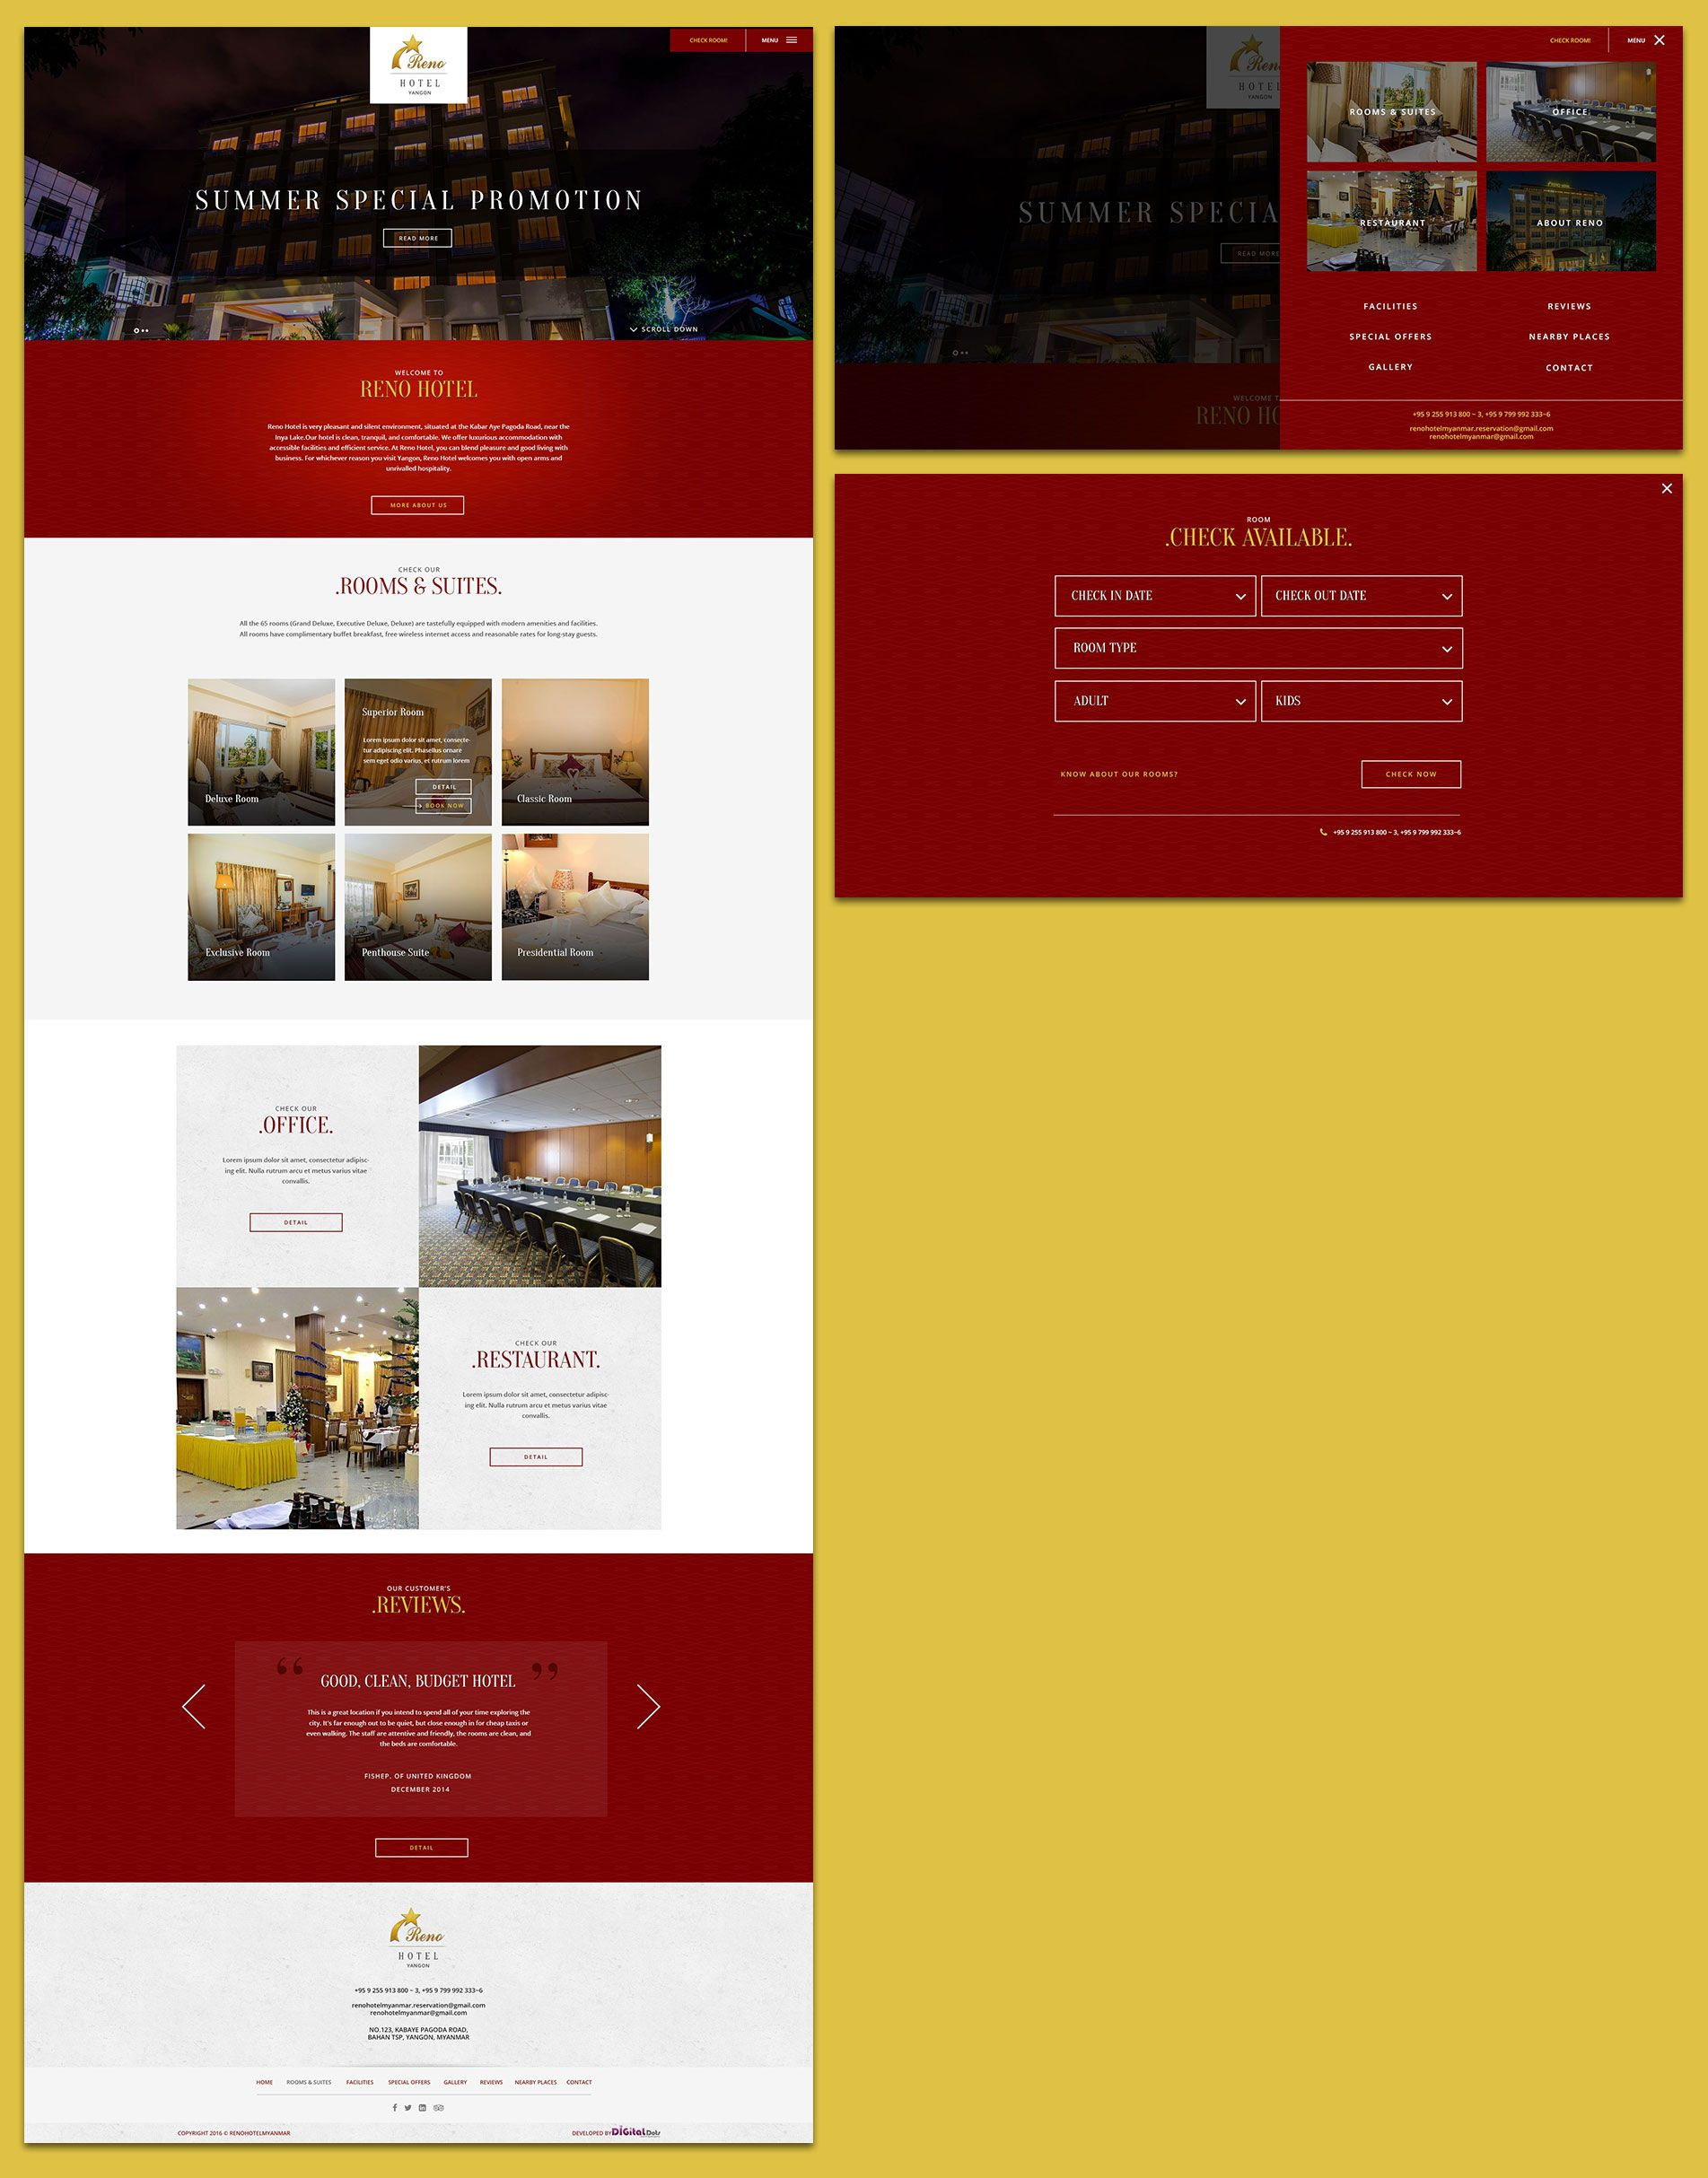 Reno Hotel Myanmar Website Design Proposal Reno Hotel Myanmar